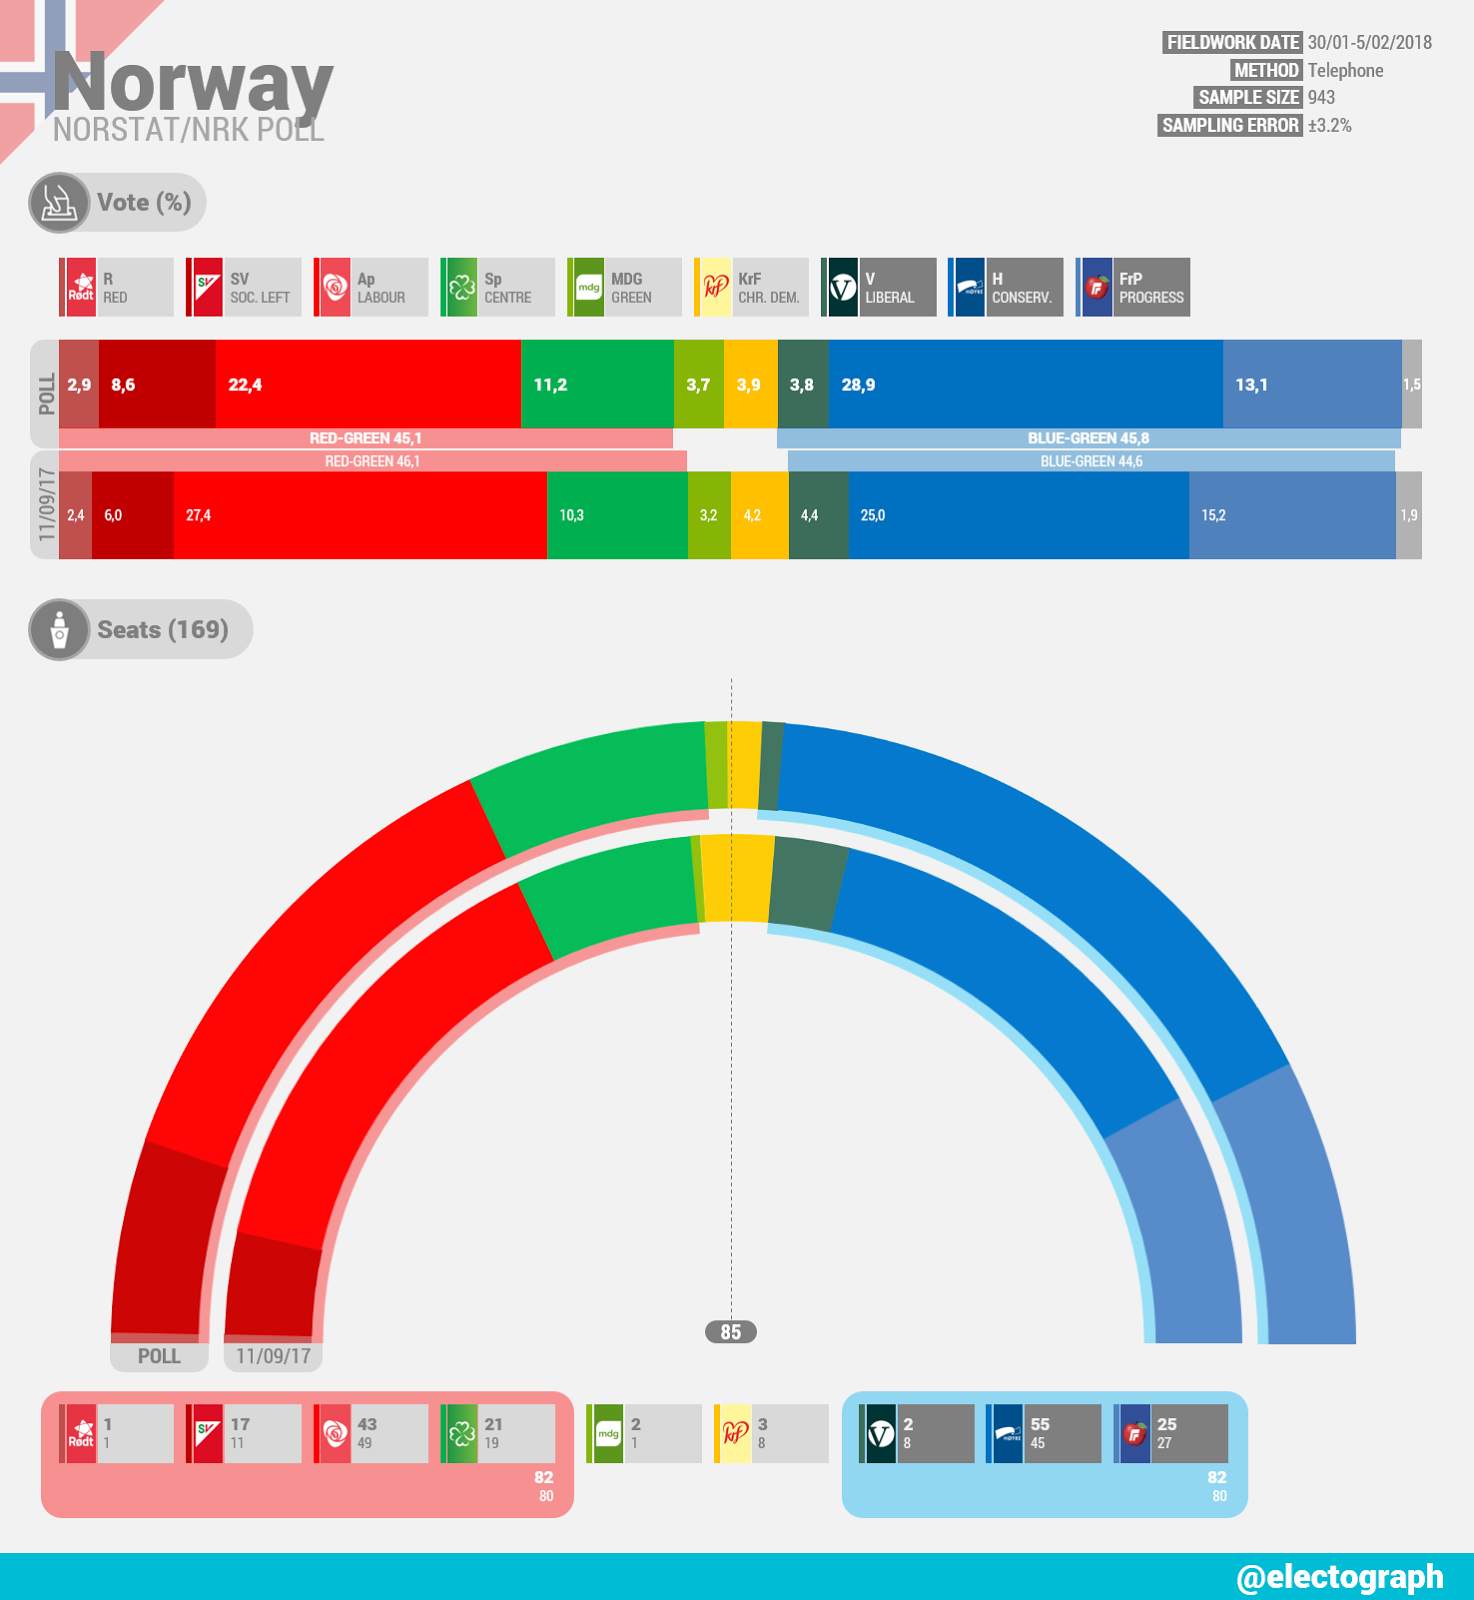 NORWAY Norstat poll chart for NRK, February 2018